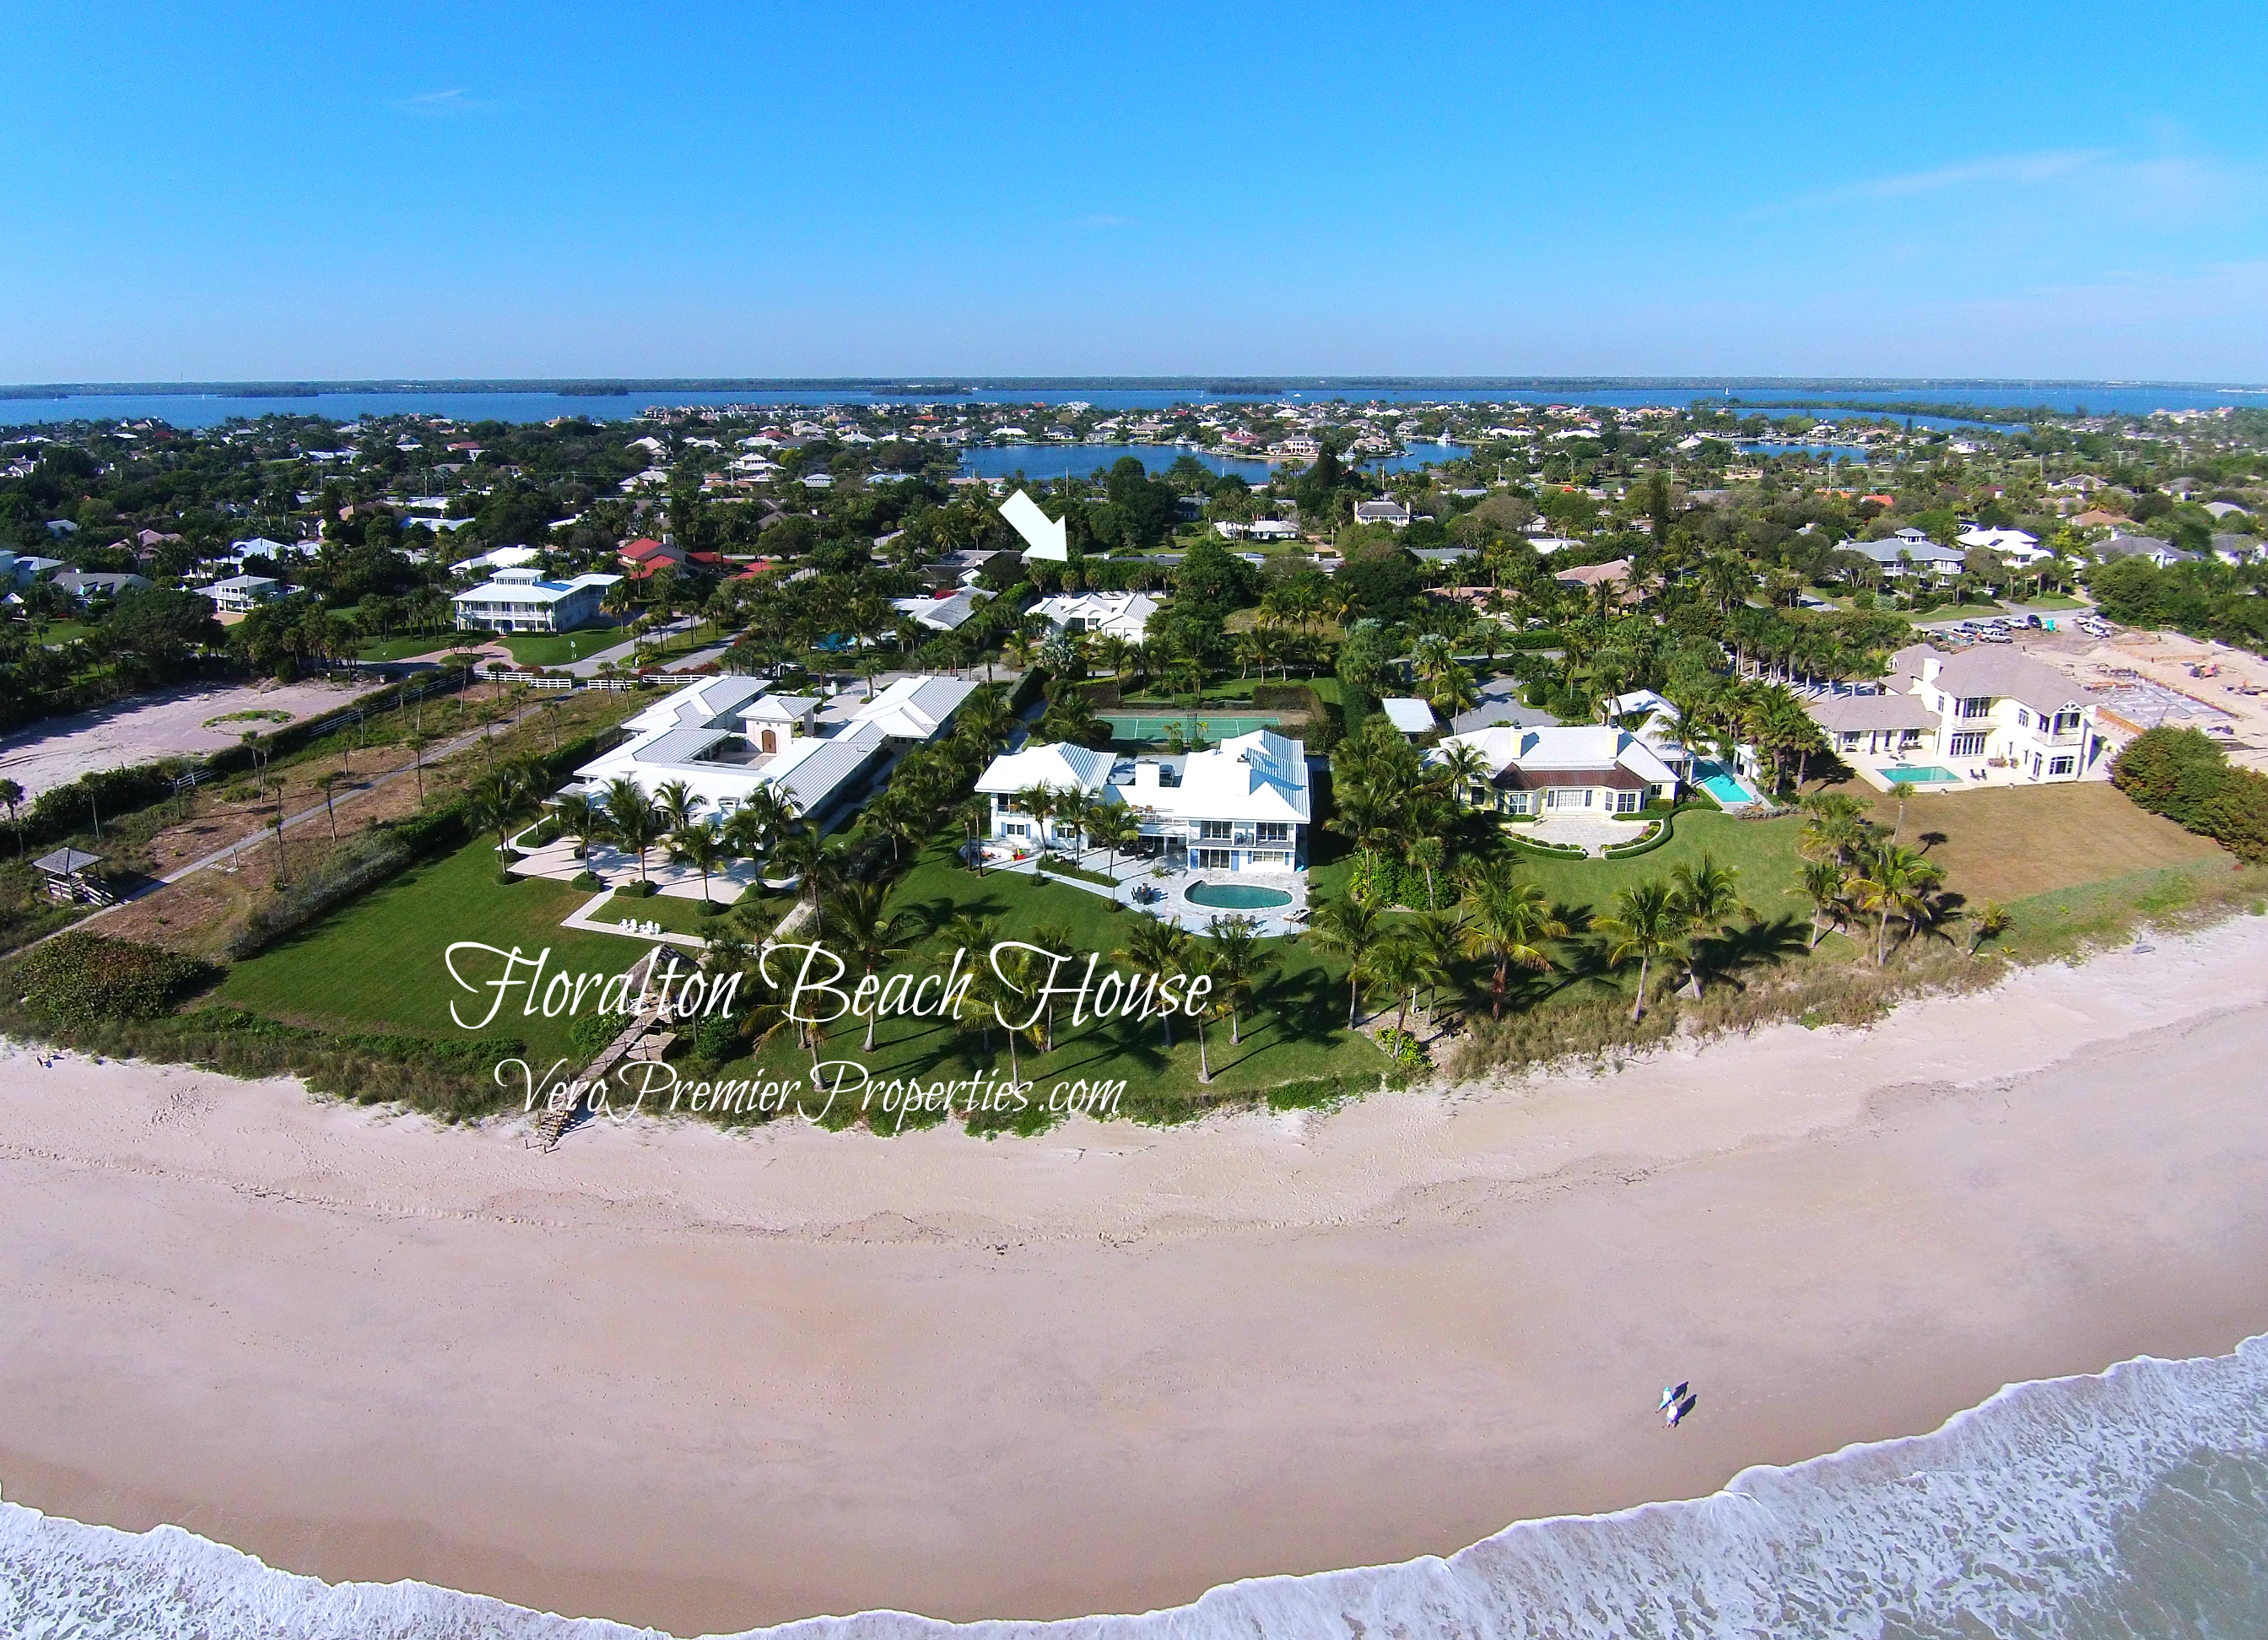 BEACH HOUSE VERO BEACH FLORIDA REDUCED PRICE 775 REEF ROAD